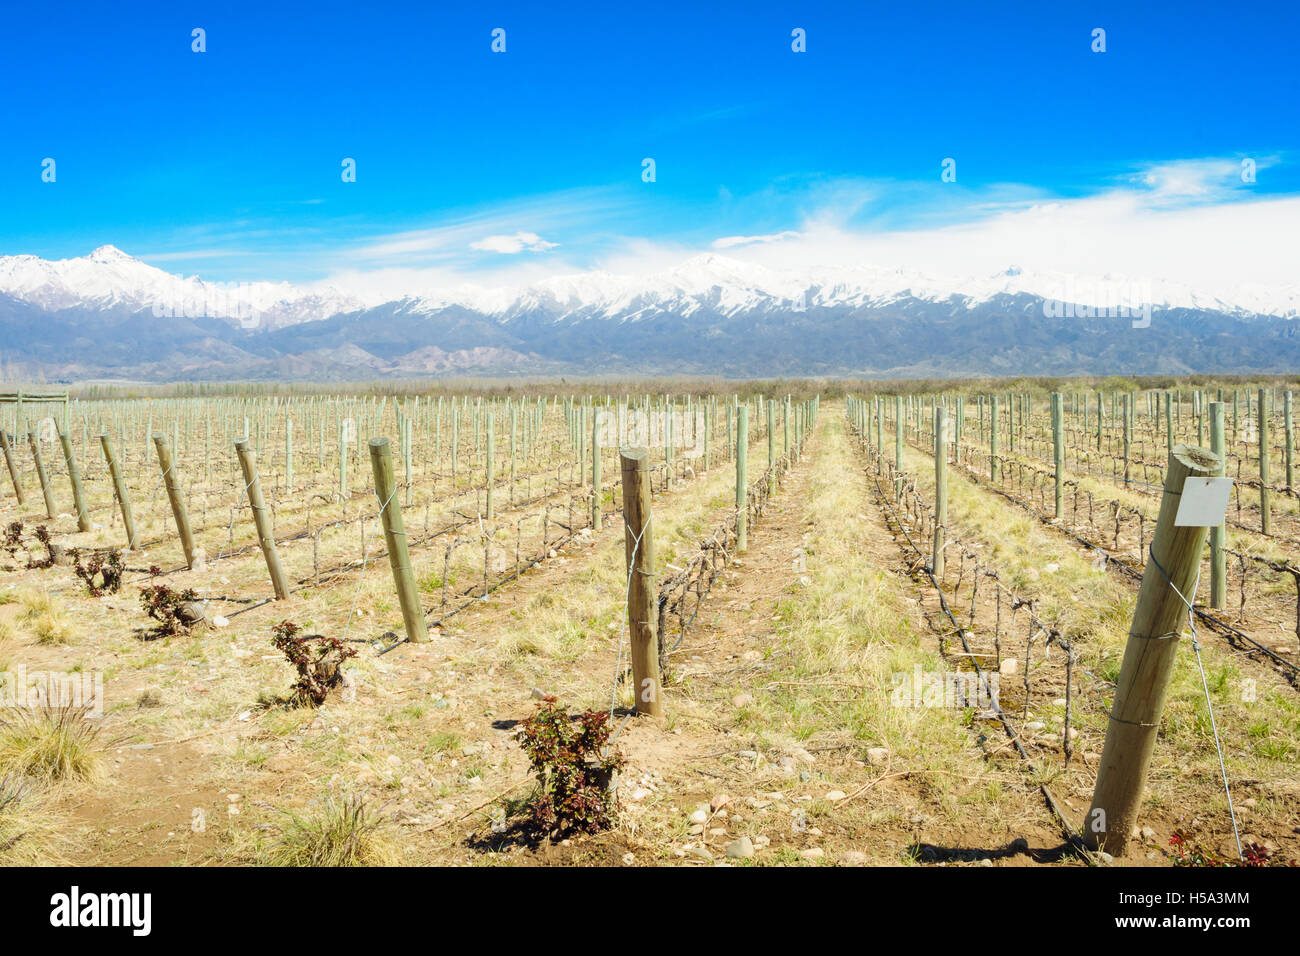 Vineyard and the Andes mountains in the Uco Valley, Mendosa Region, Argentina - Stock Image